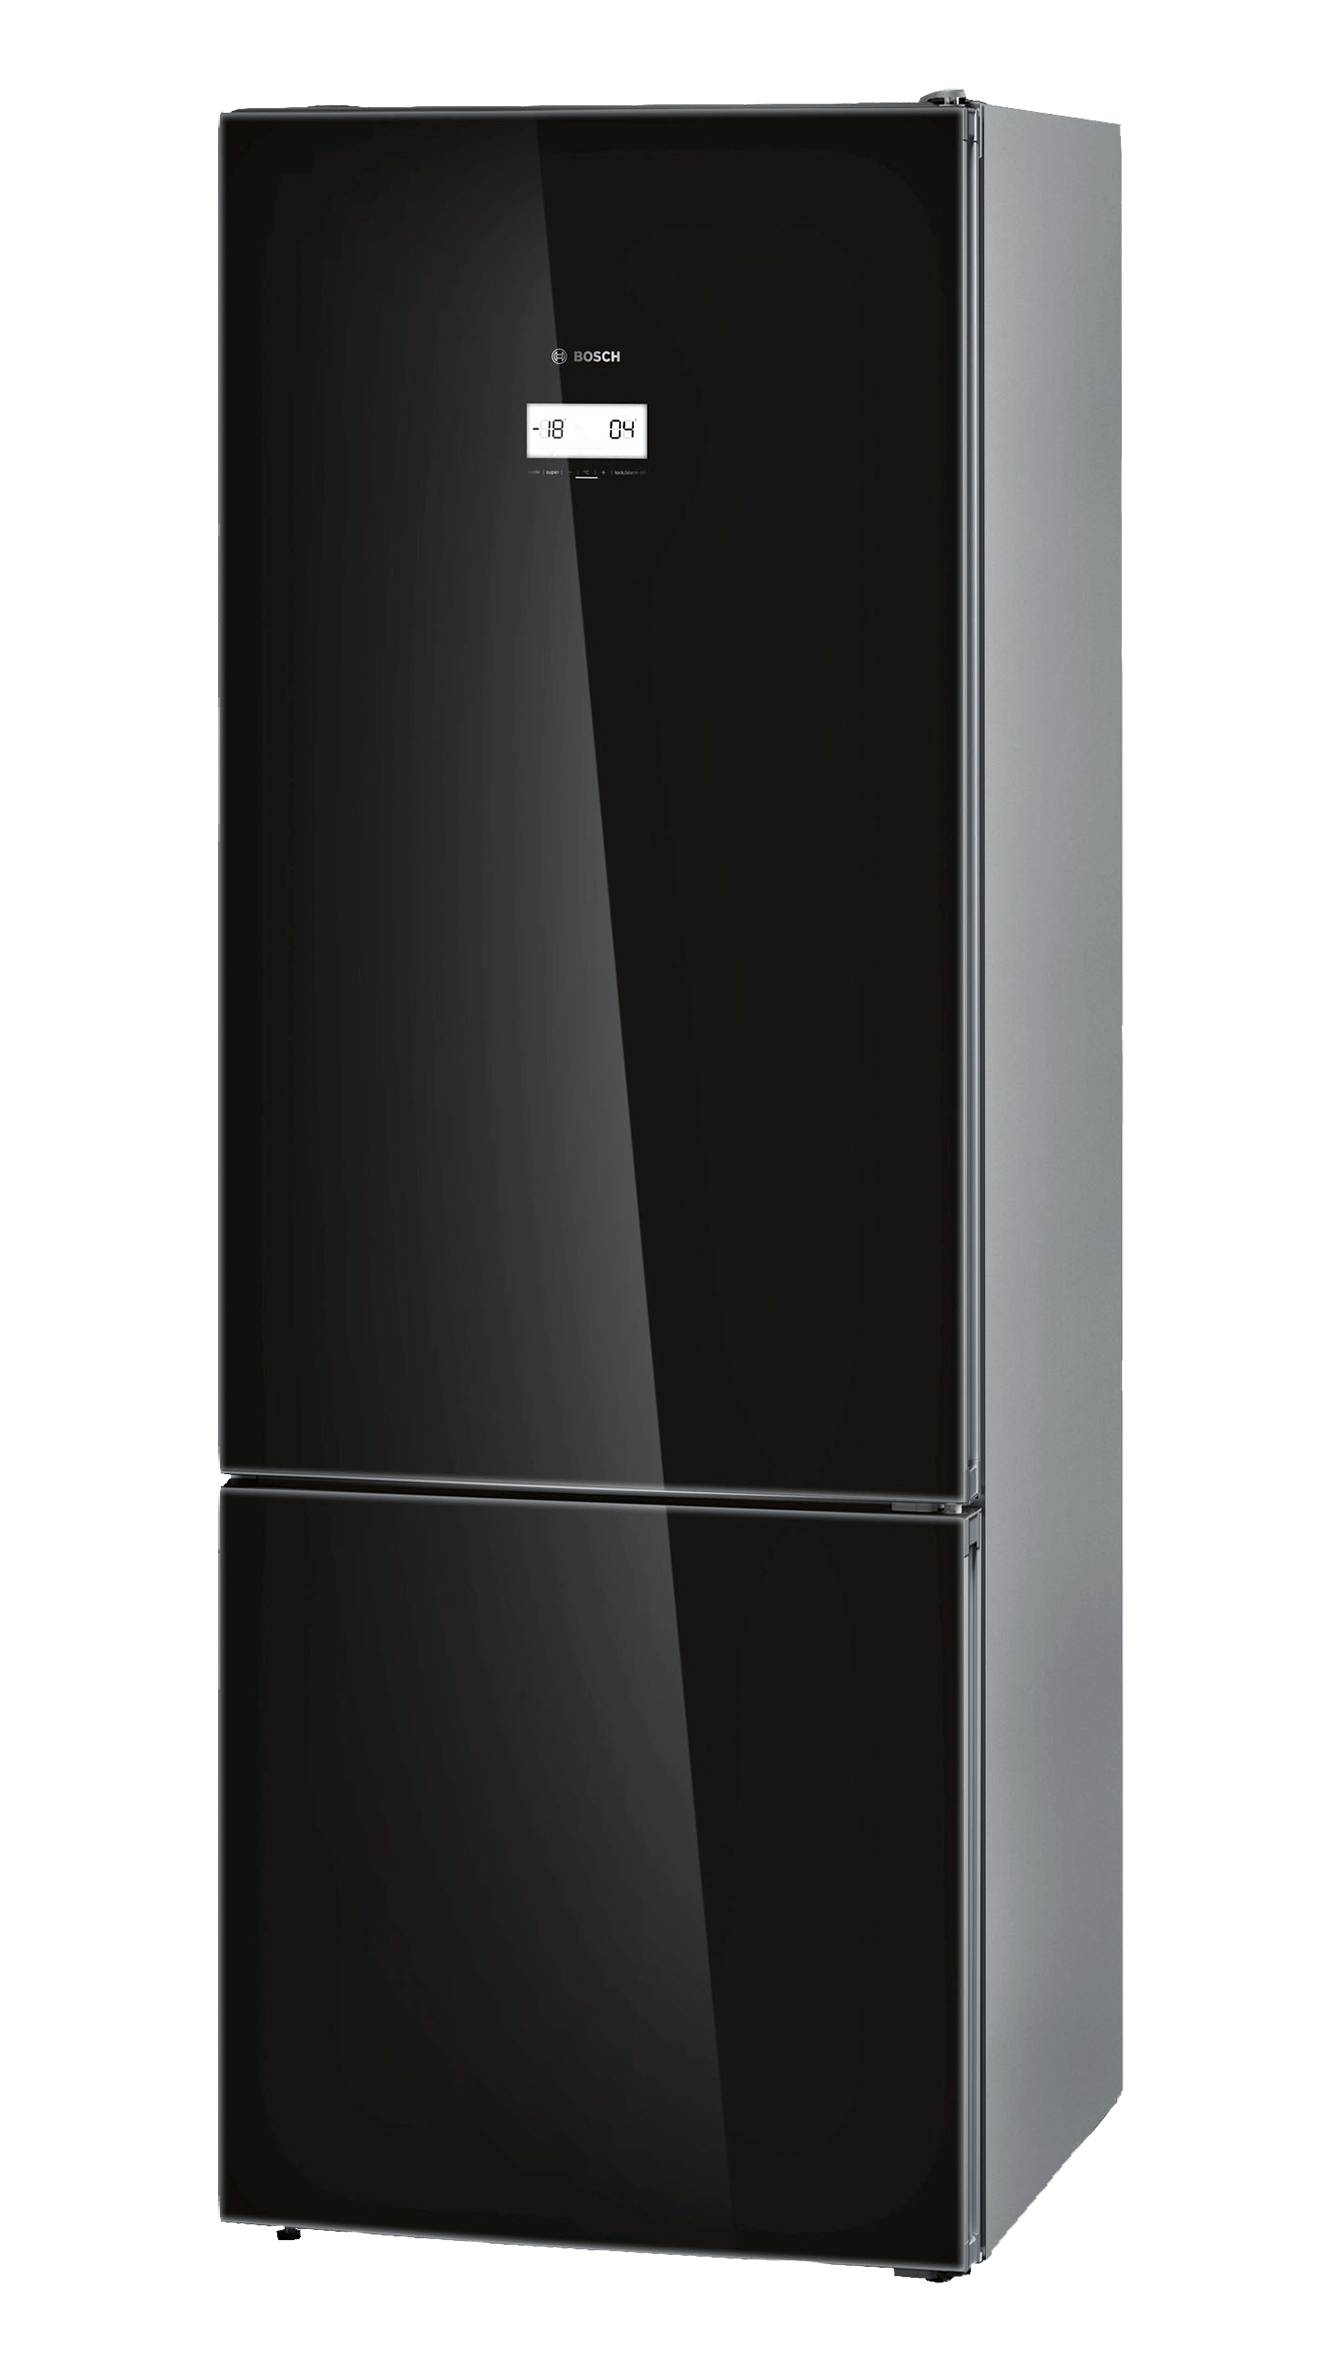 qlt counter stainless doors door depth whirlpool wid double prod spin by hei cu steel refrigerator side ft p black